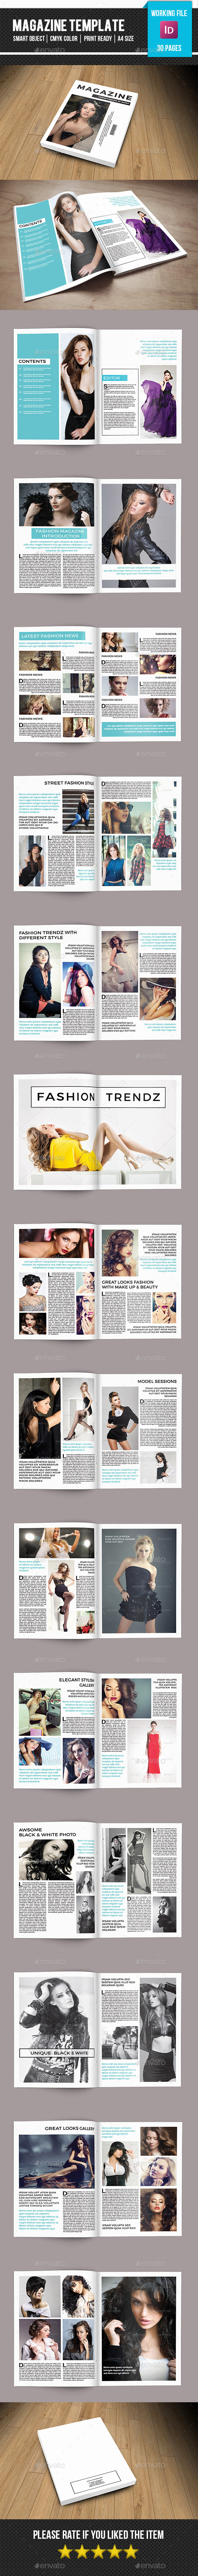 GraphicRiver Minimal Fashion Magazine-V09 11029715